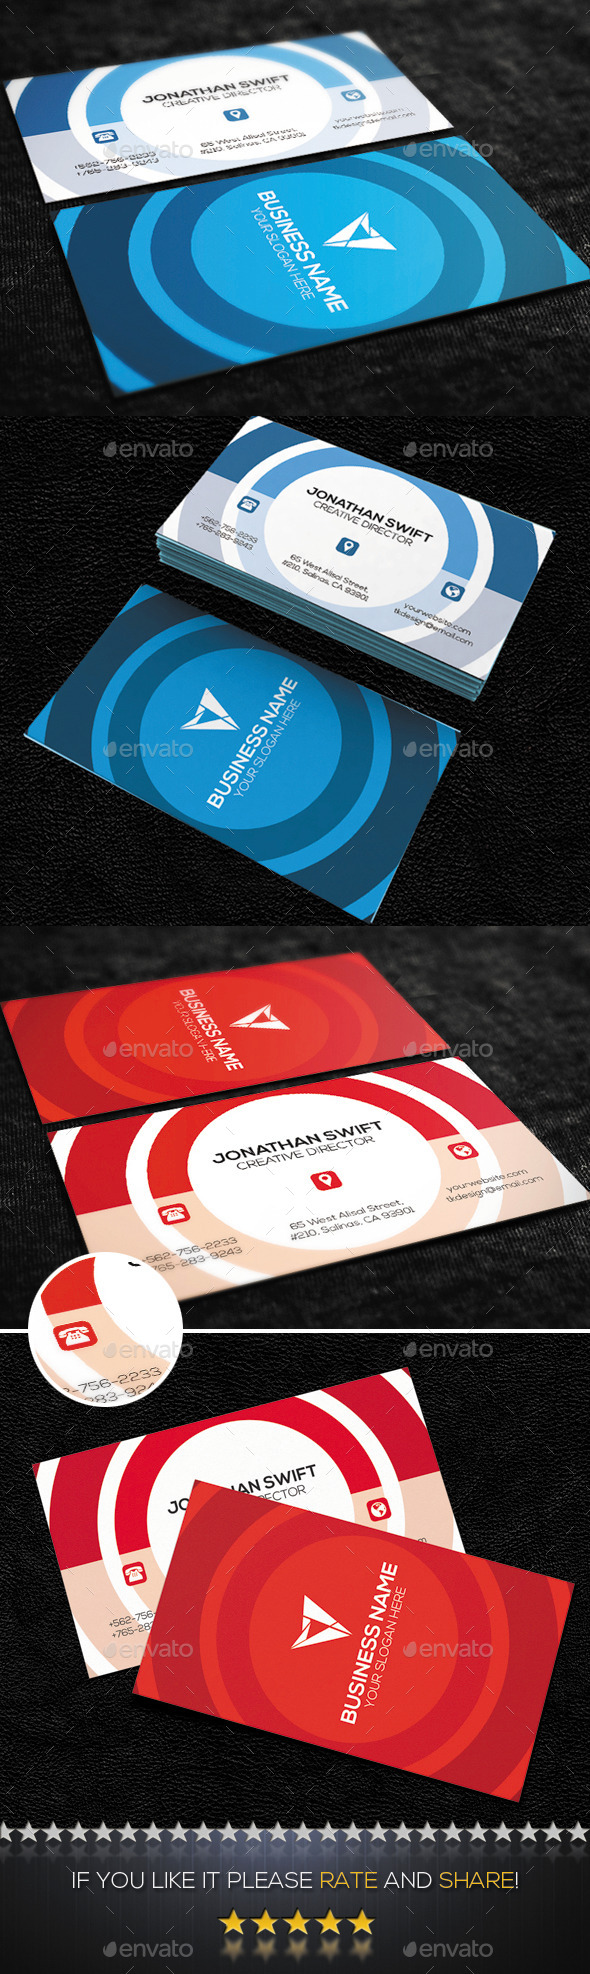 Creative Business Card No.06 - Creative Business Cards